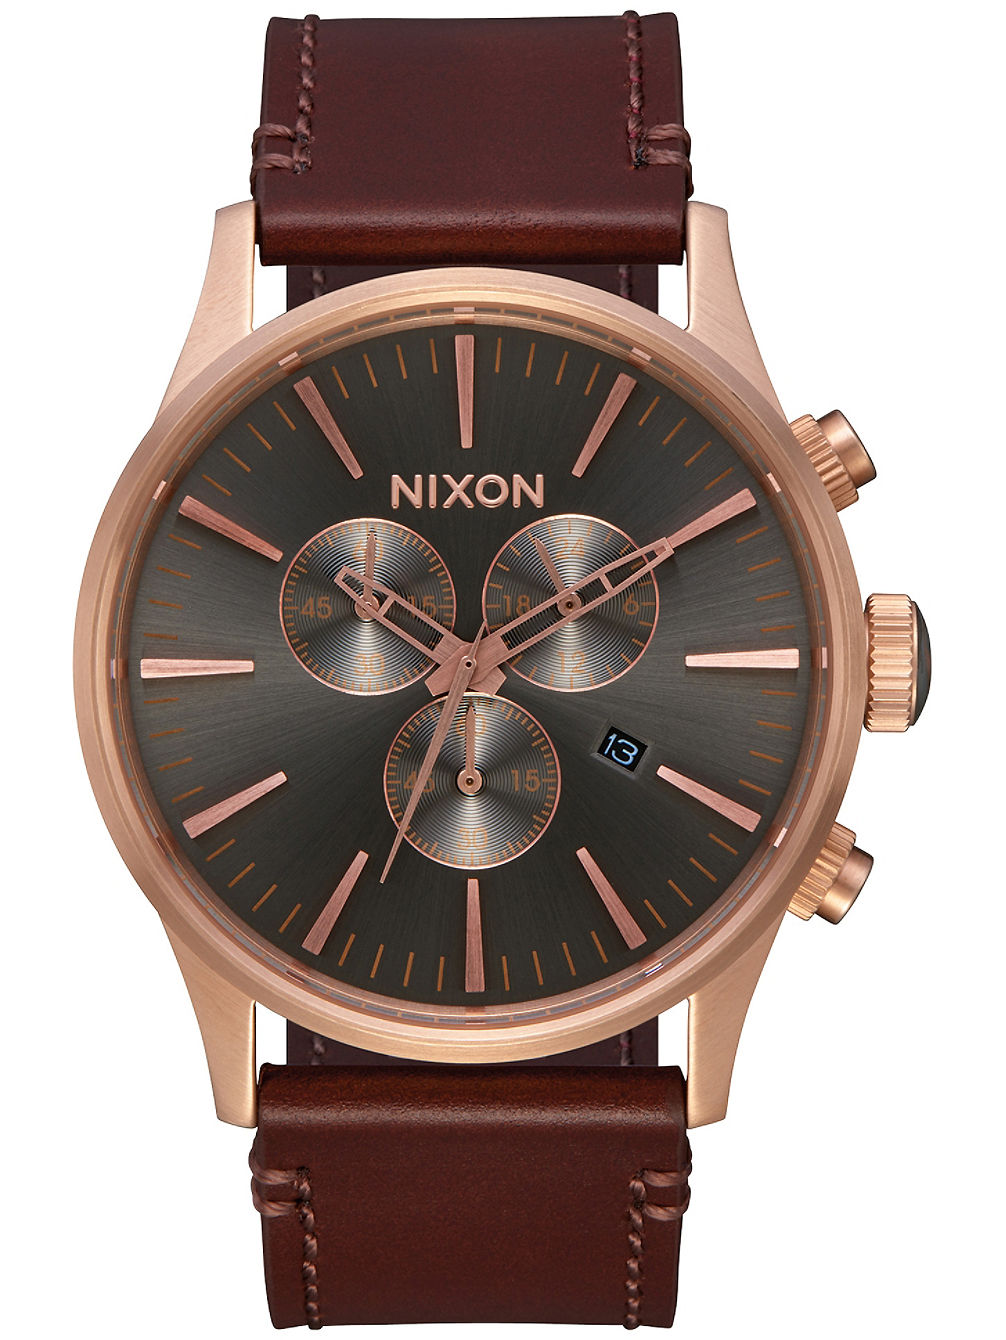 The Sentry Chrono Leather